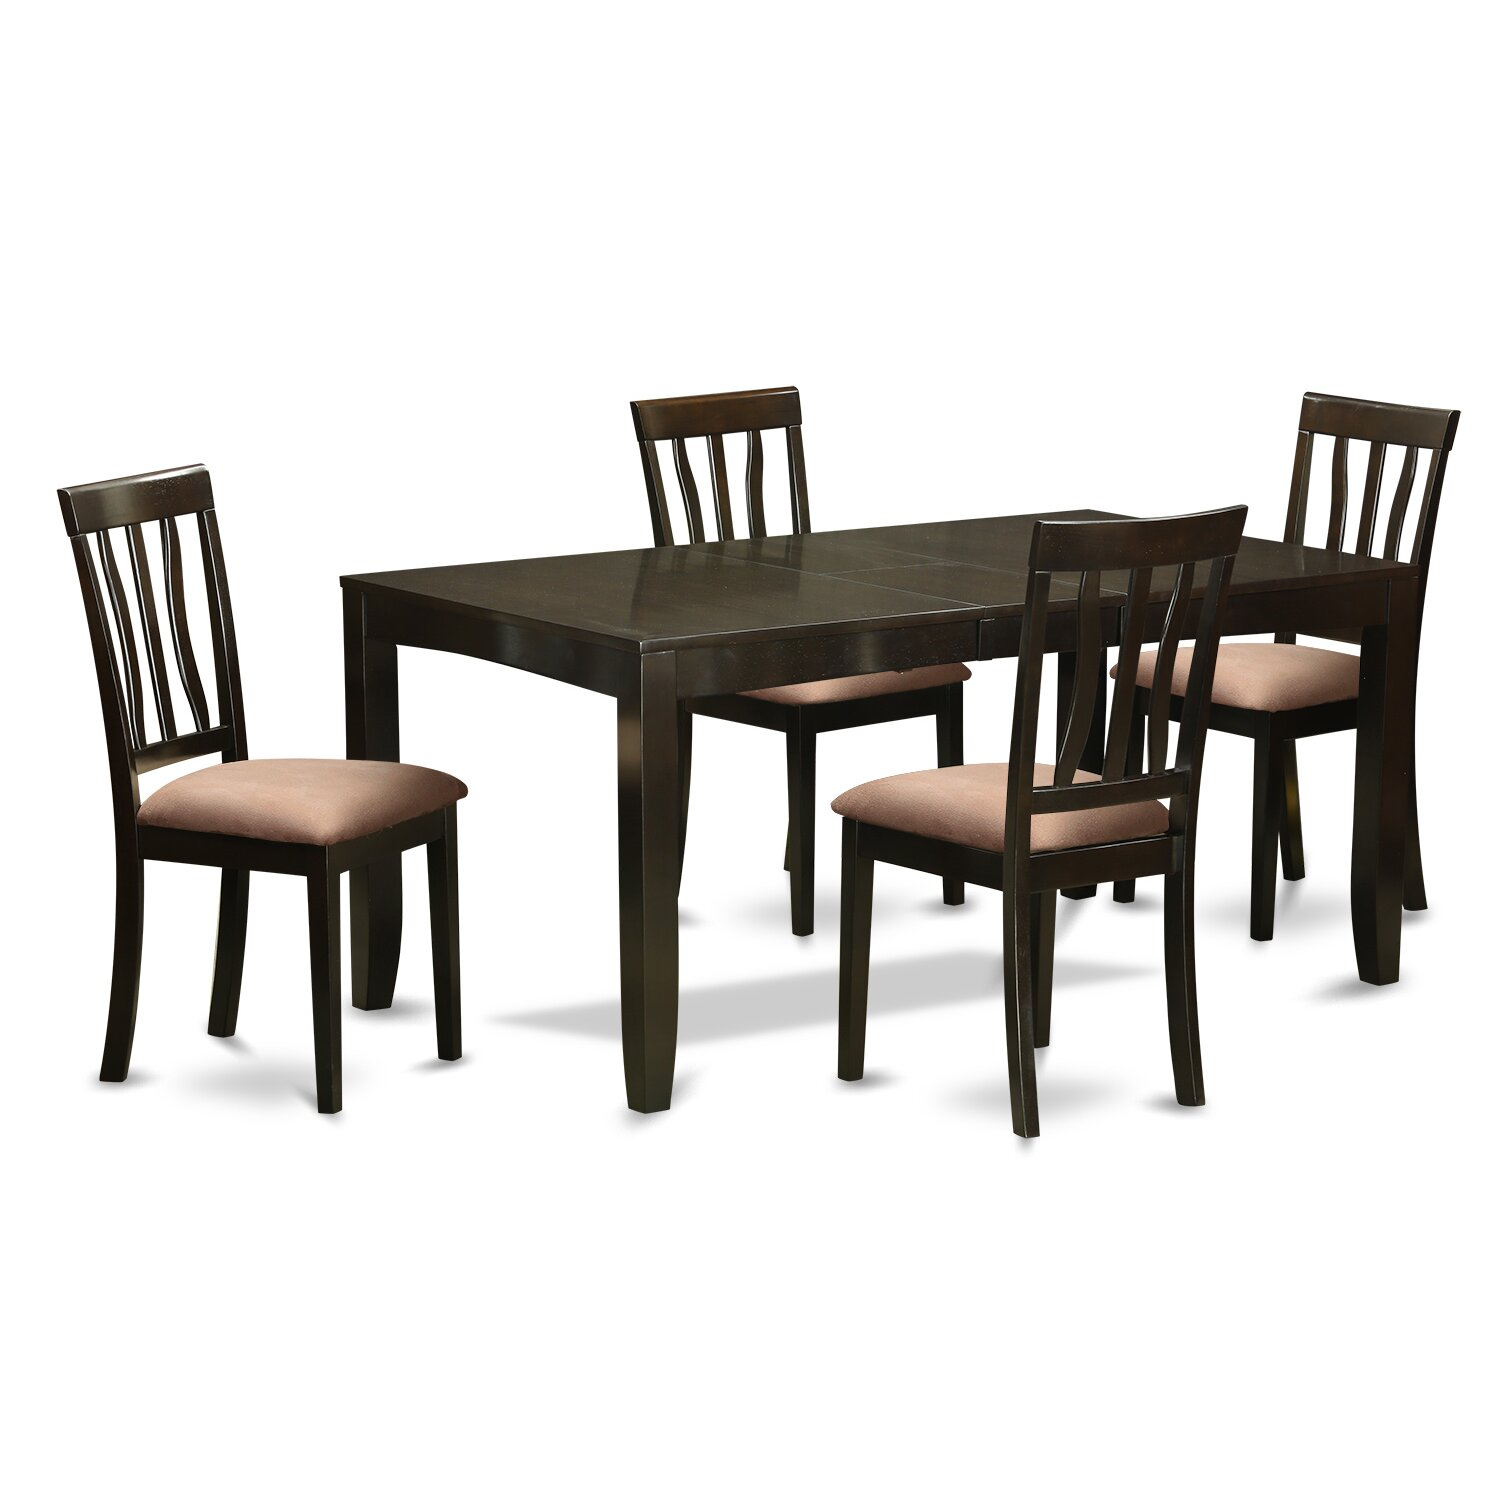 Wooden importers lynfield 5 piece dining set wayfair for 5 piece dining set